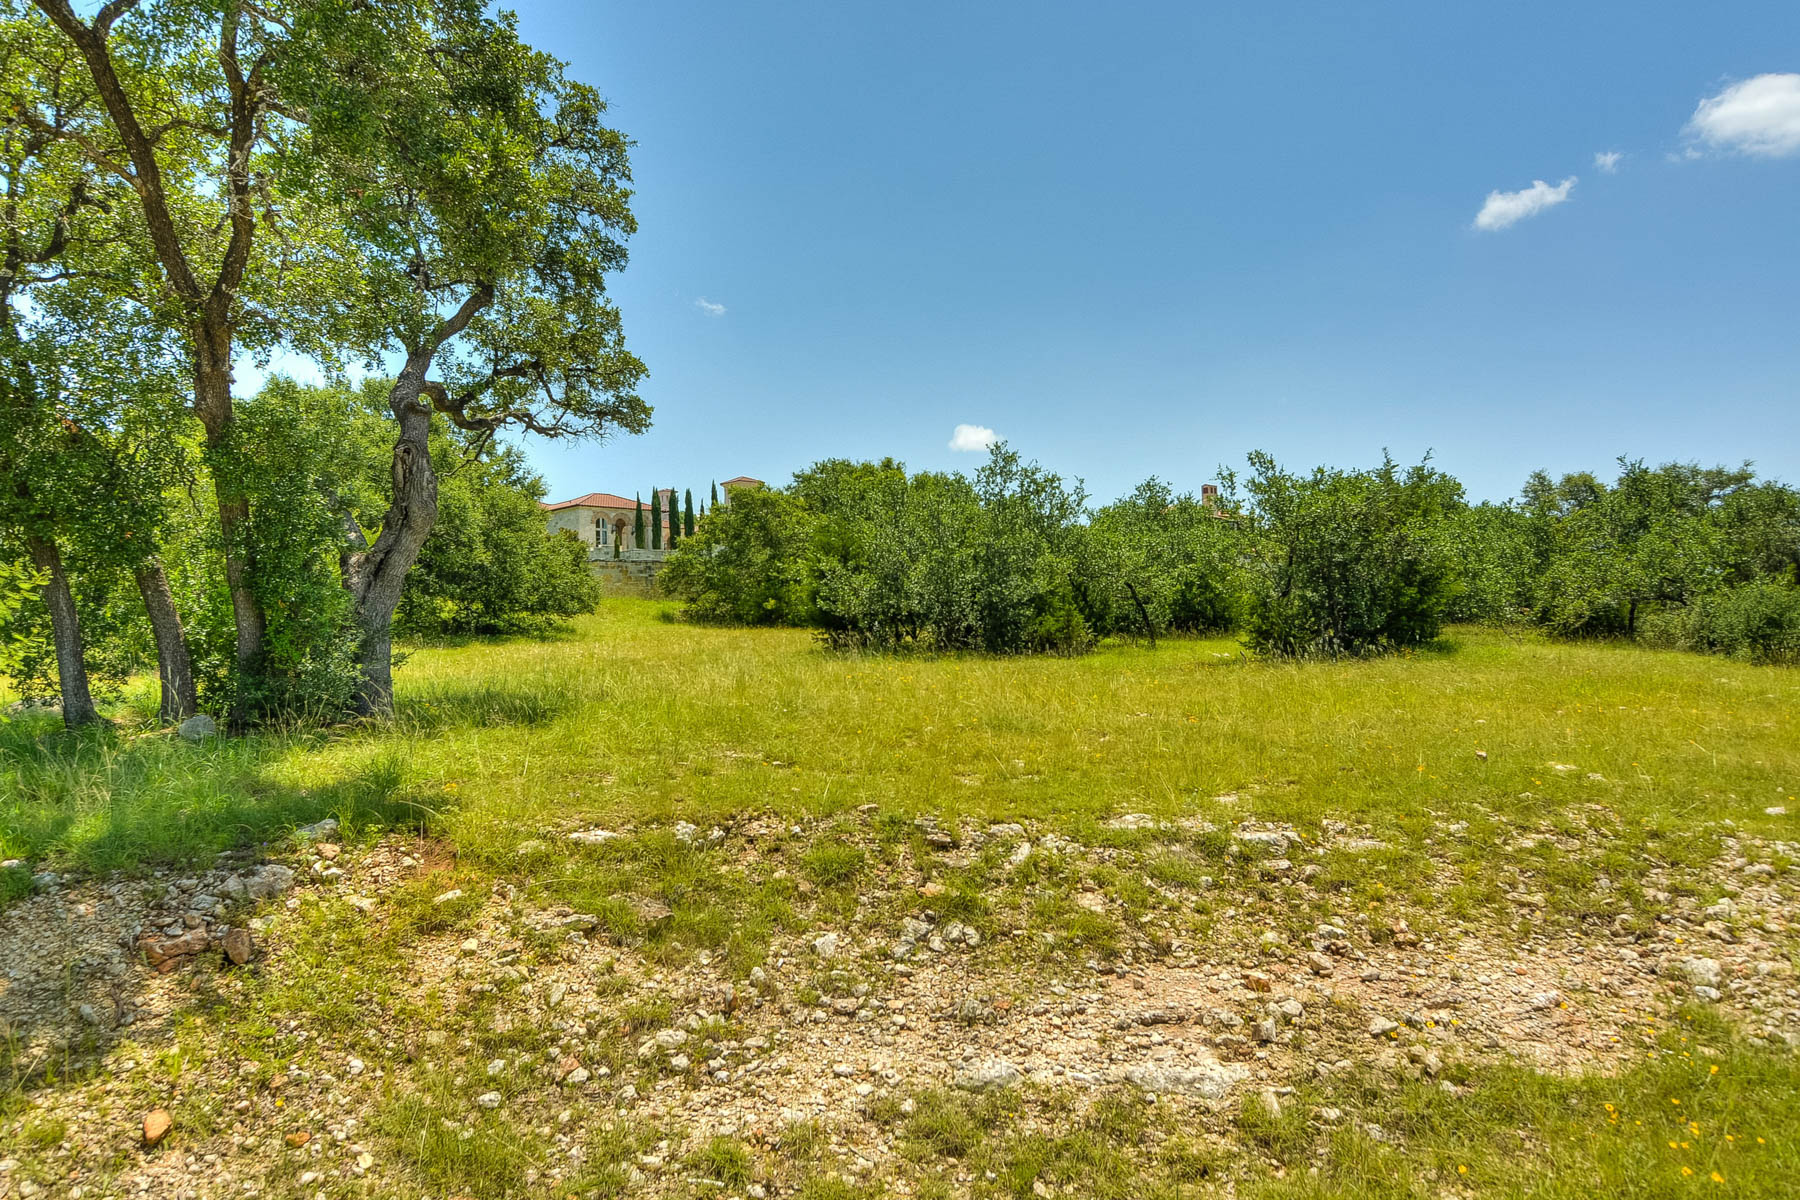 Land for Sale at Exciting Opportunity in The Dominion 18 Chaumont San Antonio, Texas 78257 United States